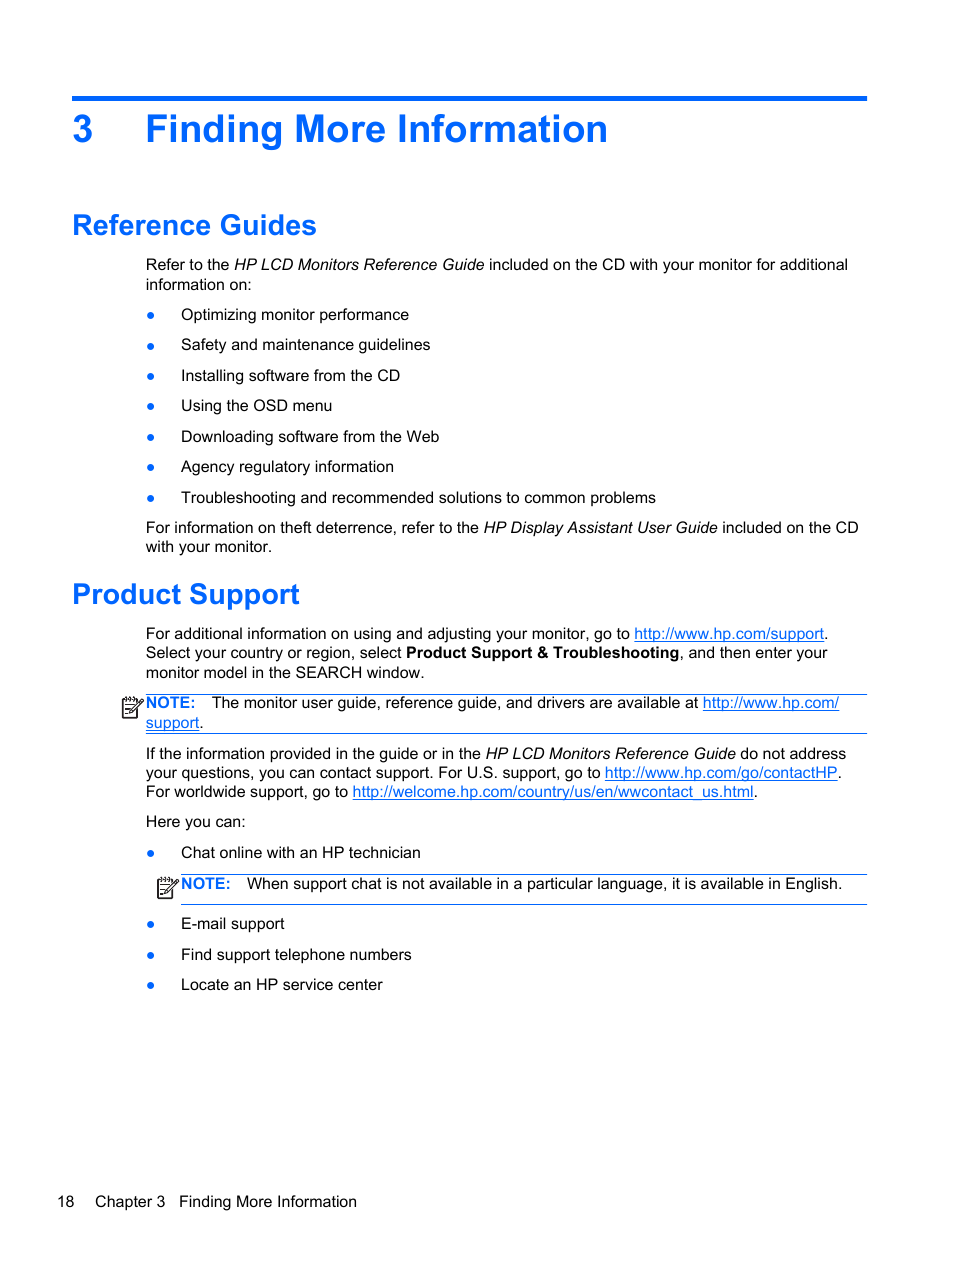 Finding more information, Reference guides, Product support